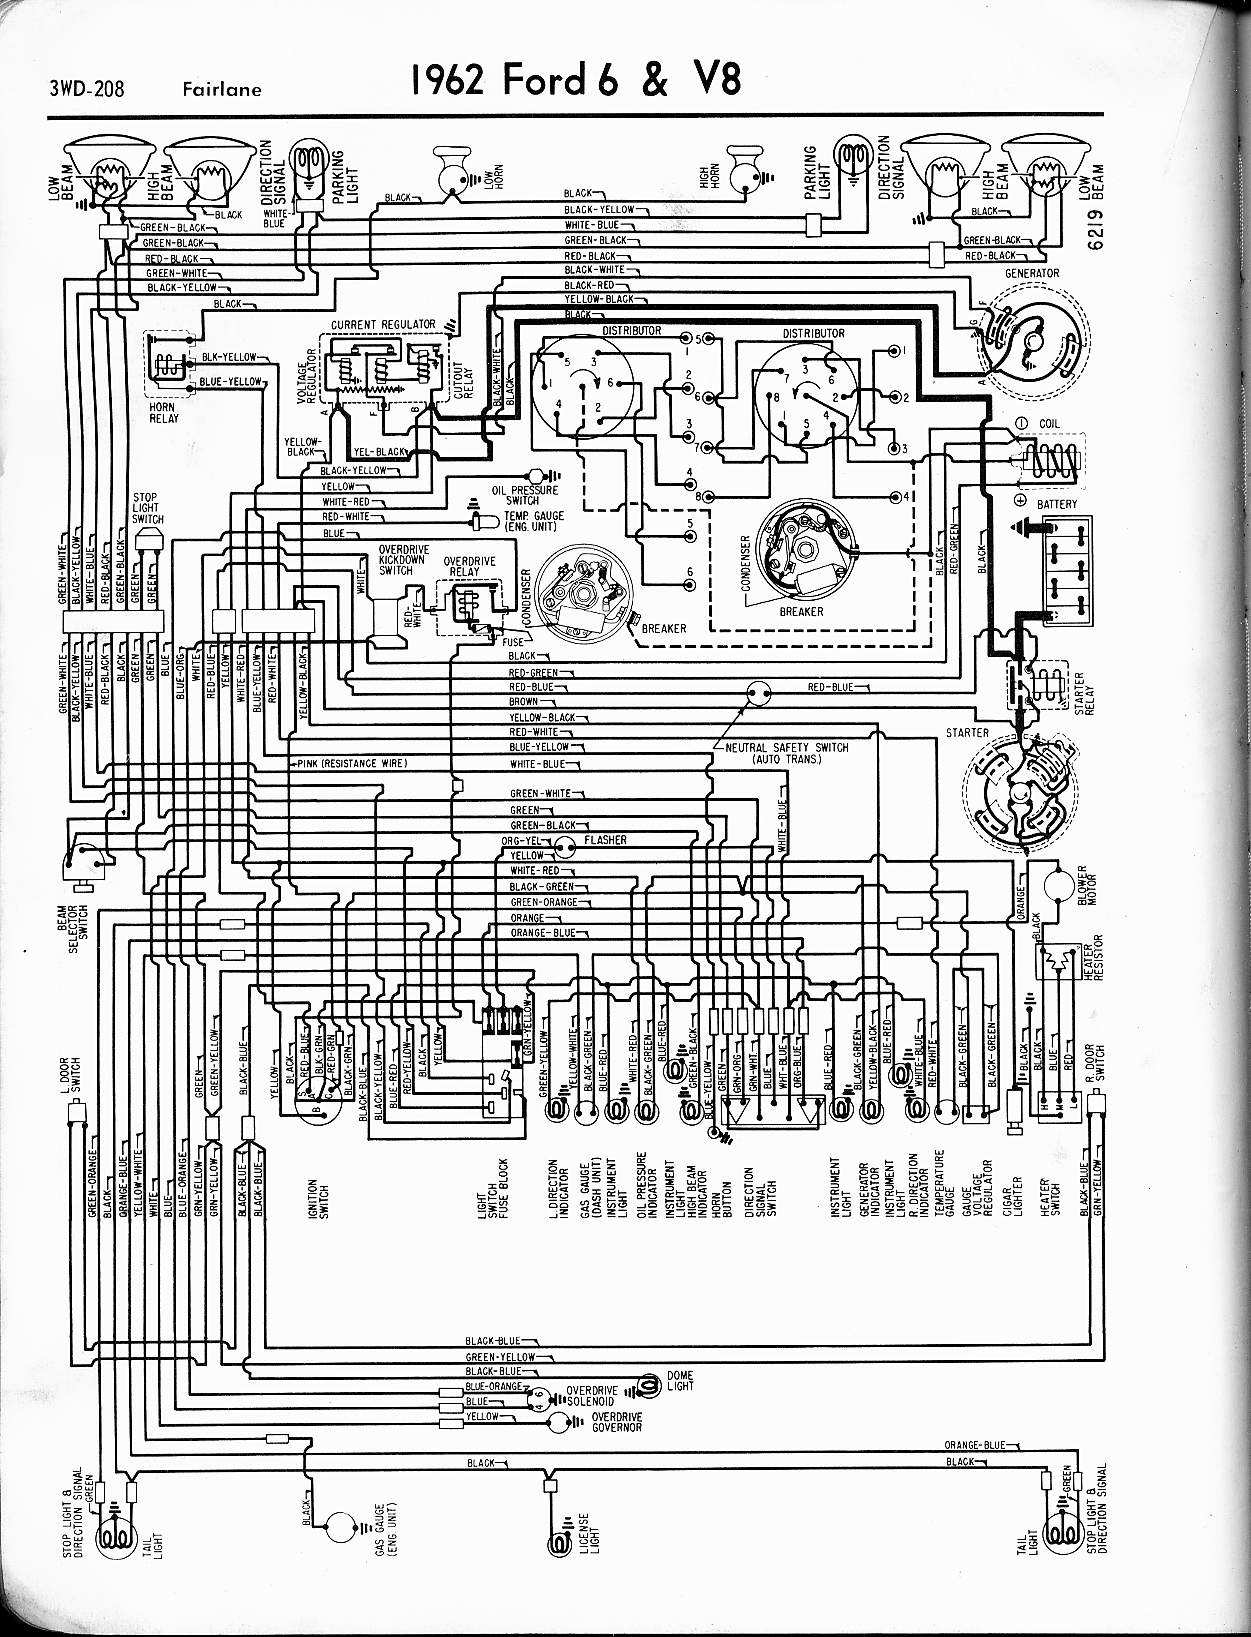 1962 Ford Thunderbird Wiring Diagram on 1959 ford ranchero wiring diagram